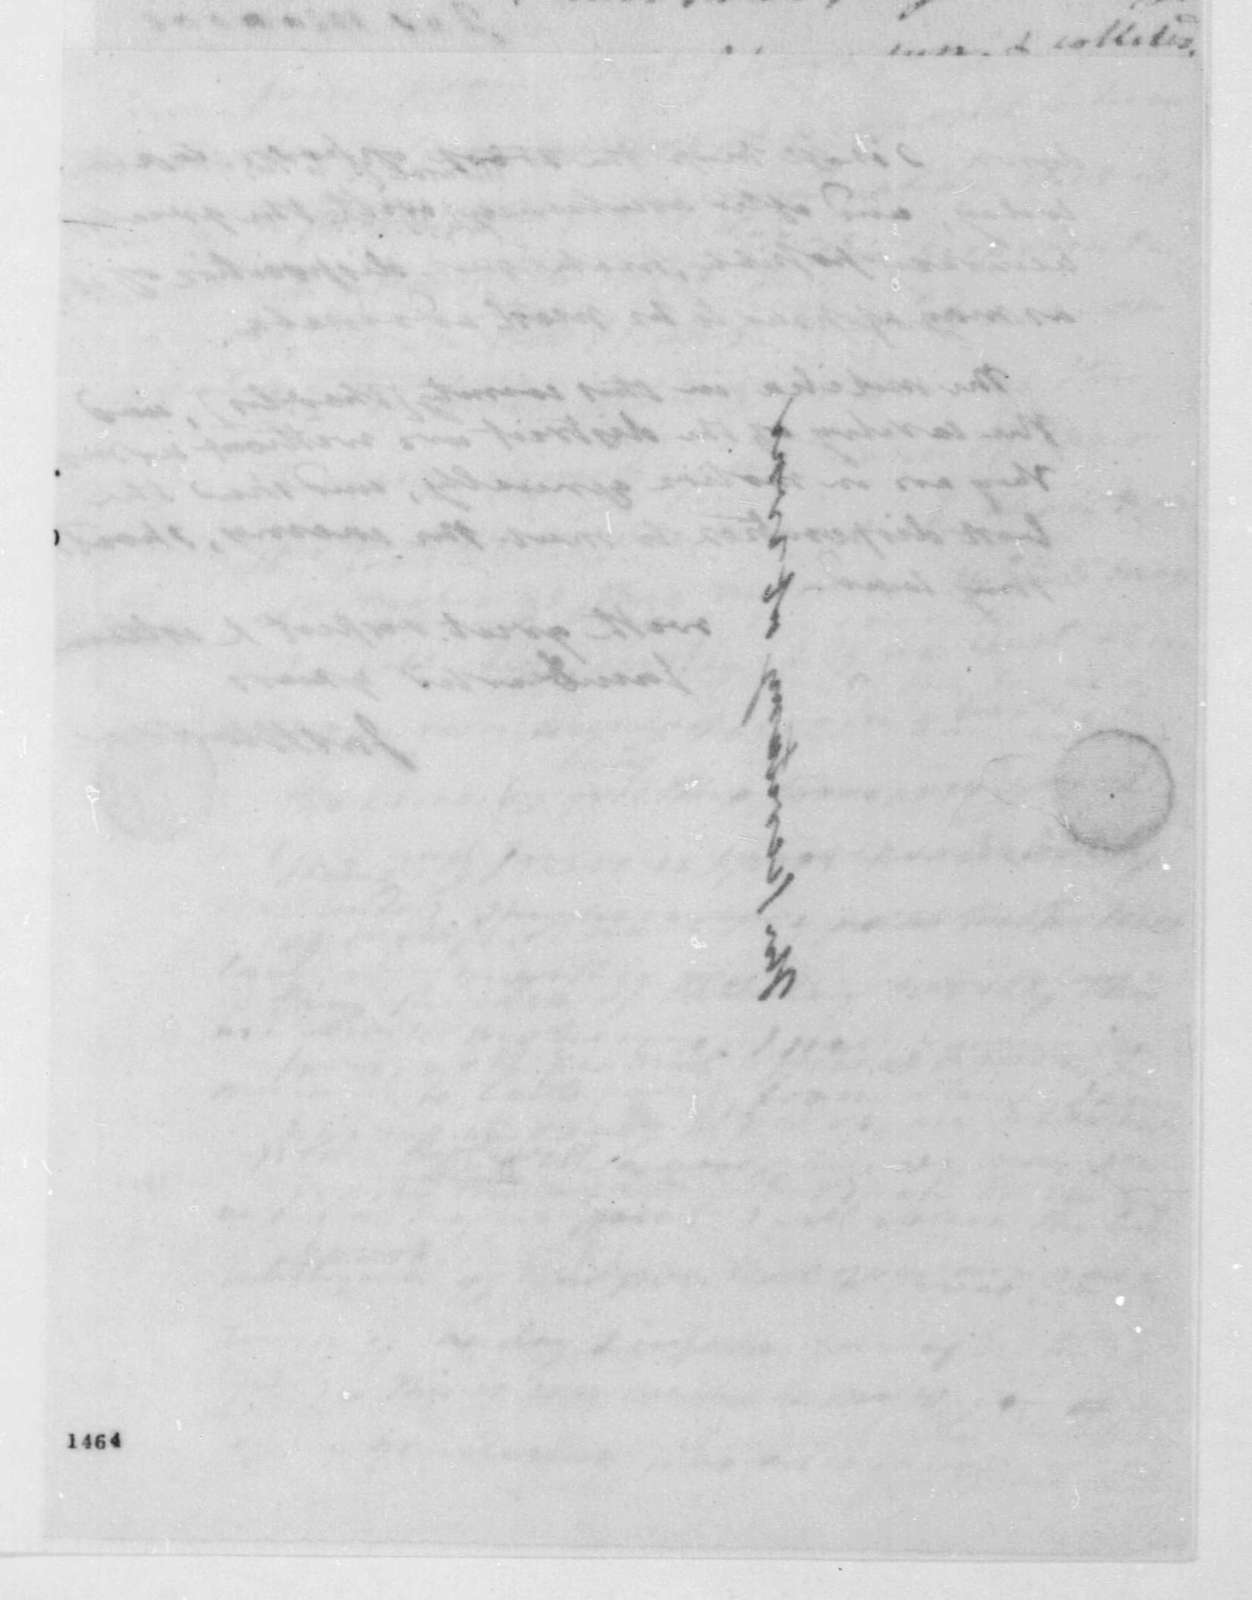 James Monroe to William H. Crawford, July 16, 1813.